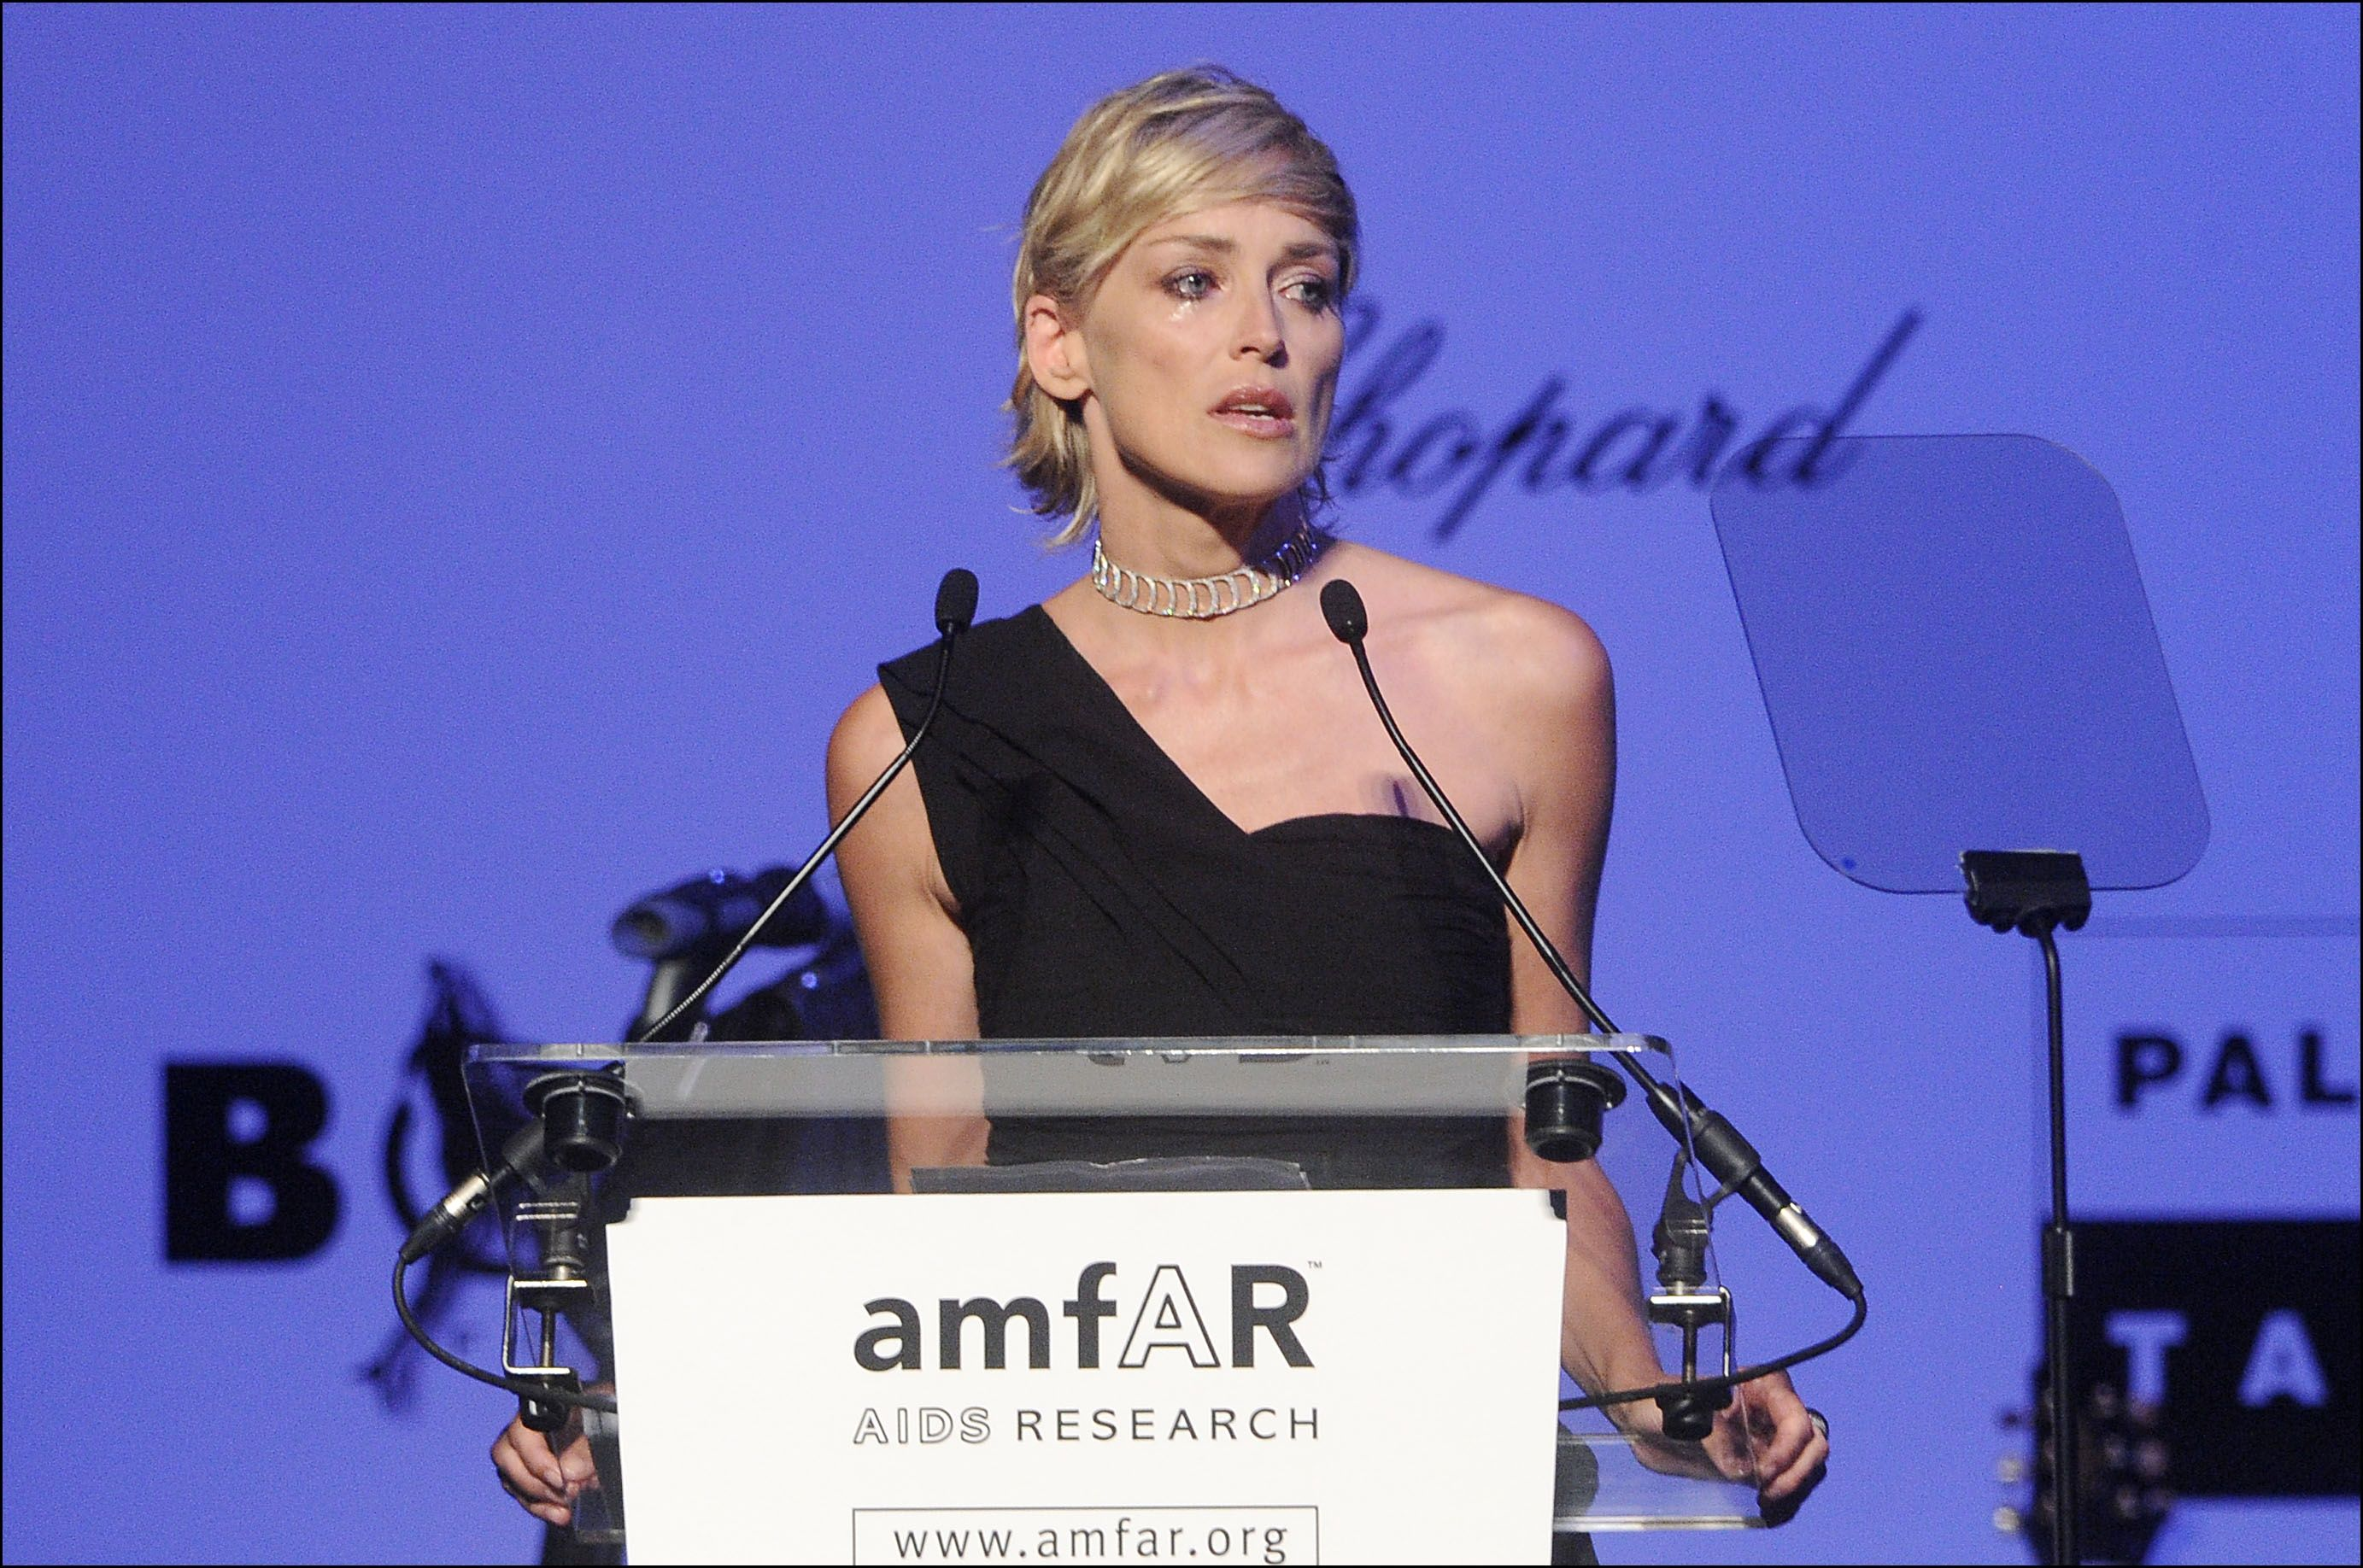 Sharon Stone at the AmfAR Cinema against AIDS Gala and auction during the 62nd Cannes Film Festival in Antibes, France on May 21, 2009. | Source: Getty Images